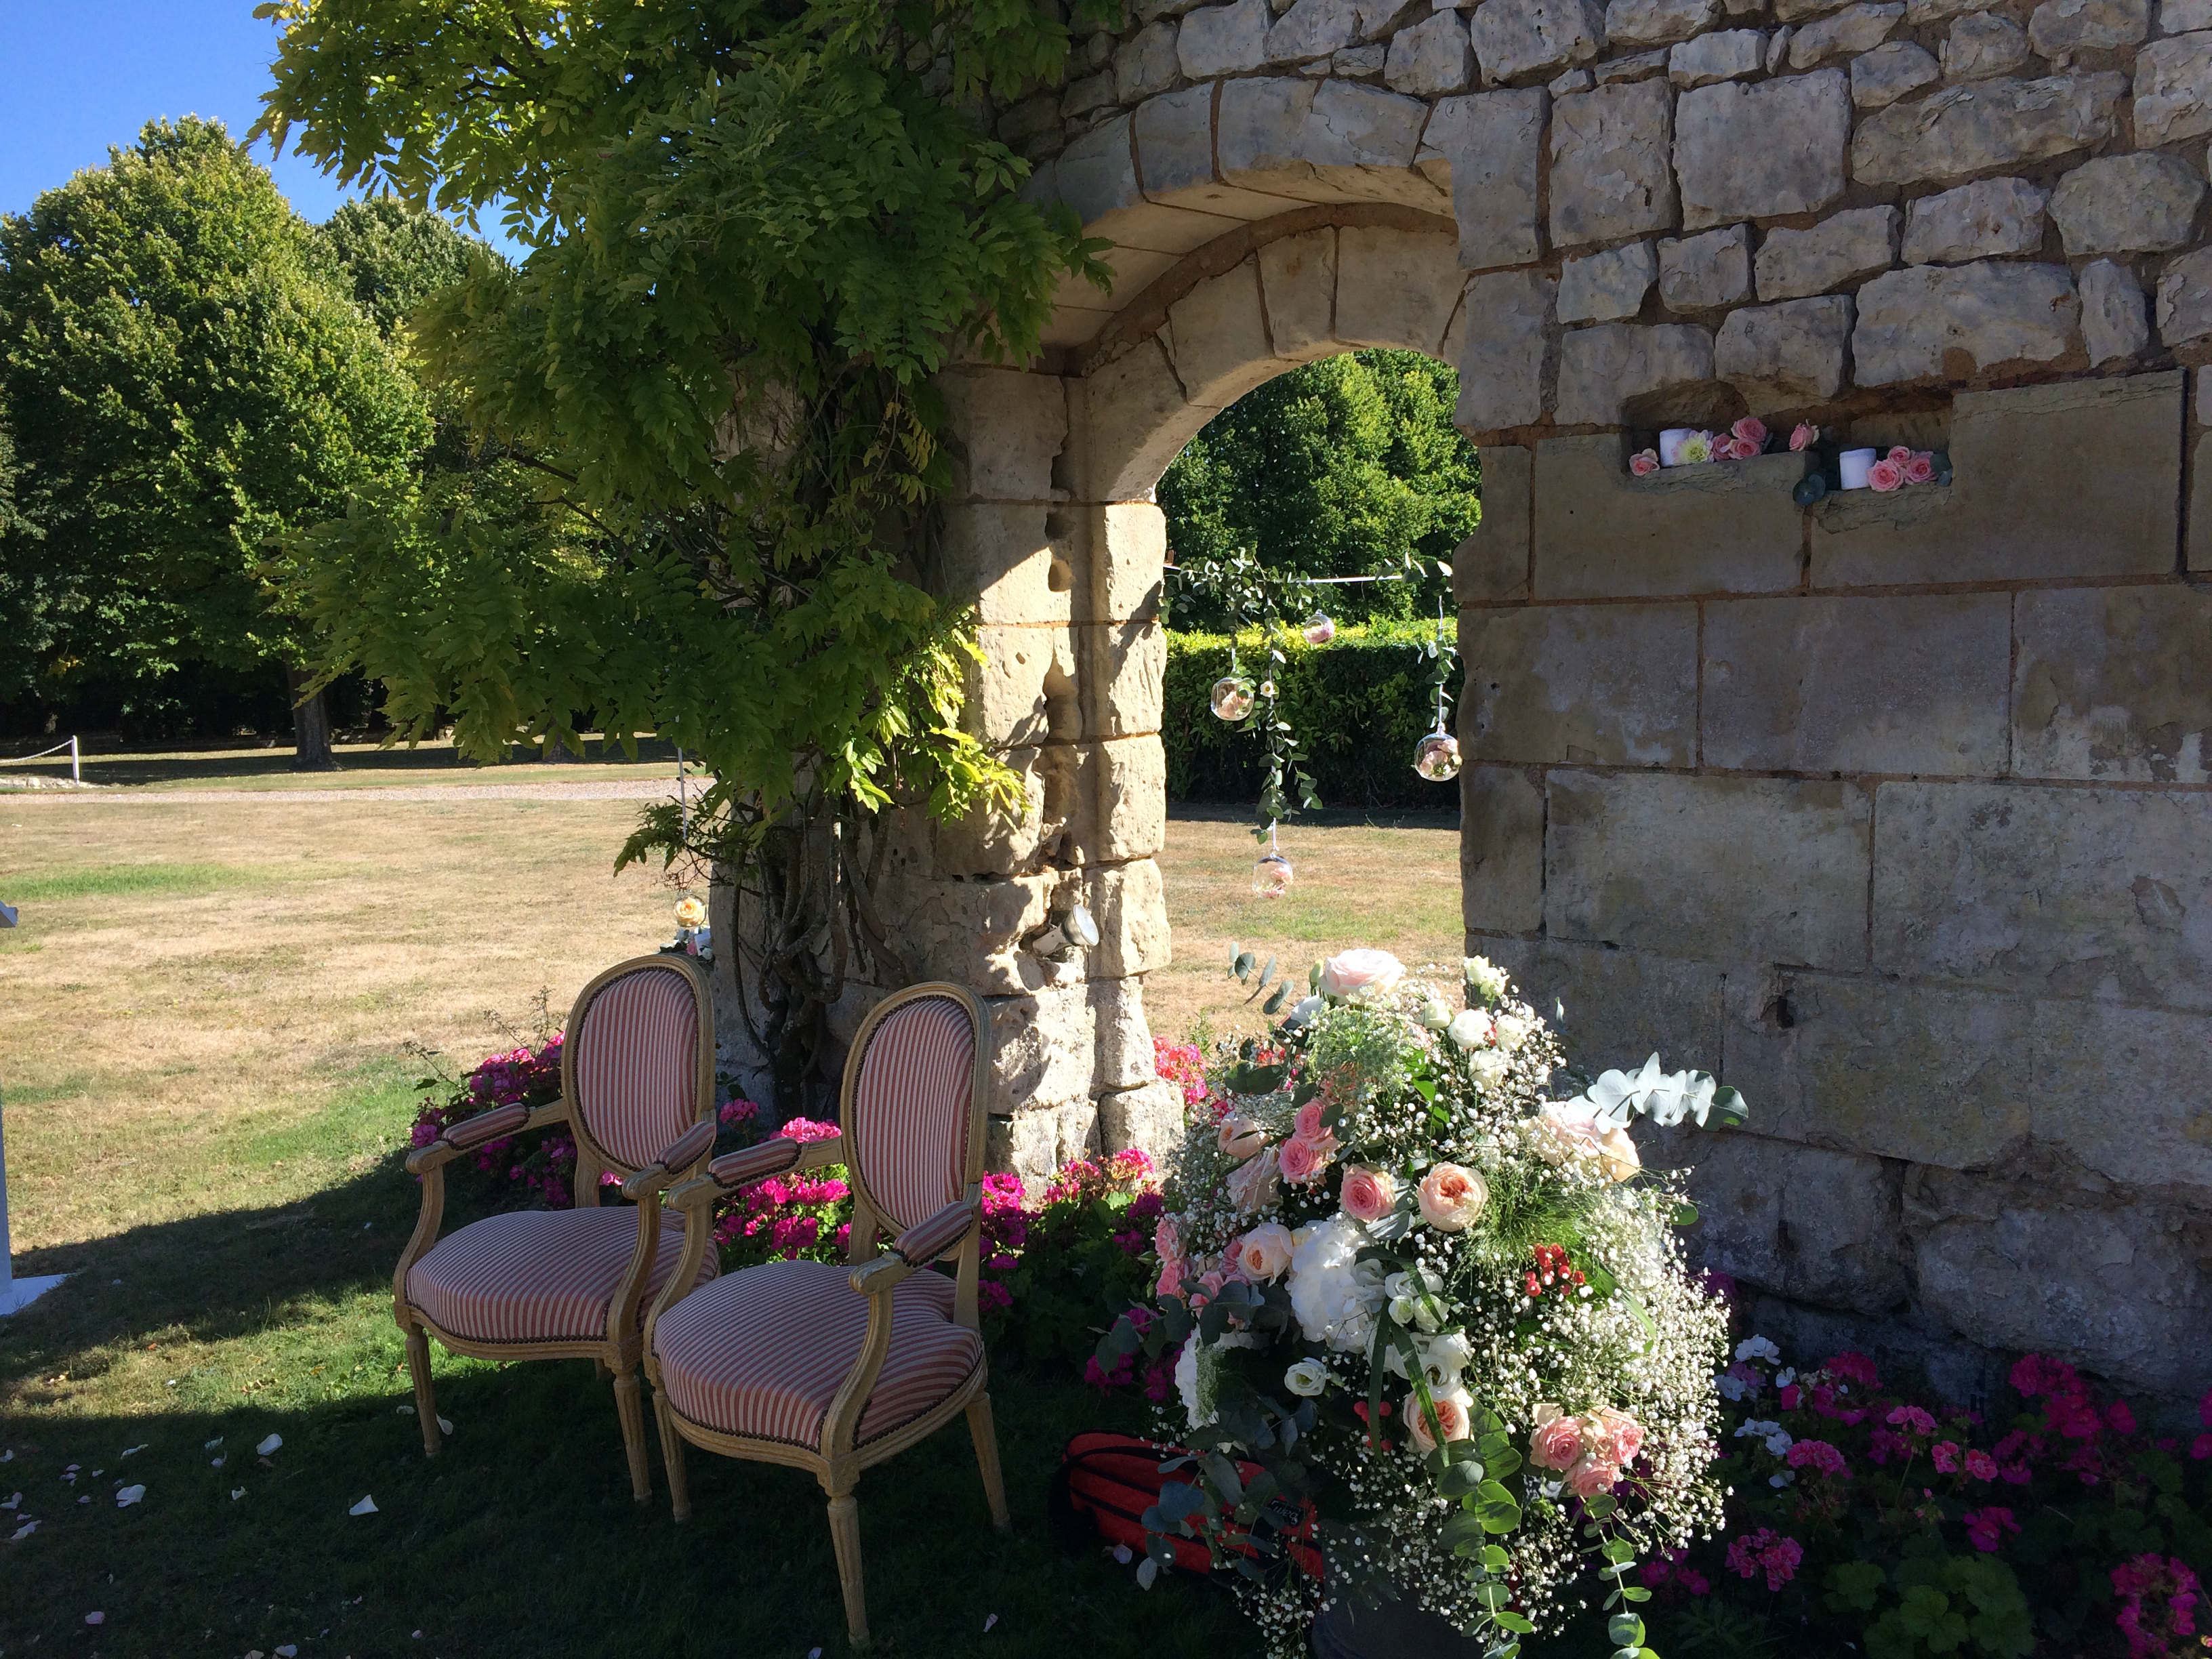 Celebration Wedding Ceremony-Loire Valley France